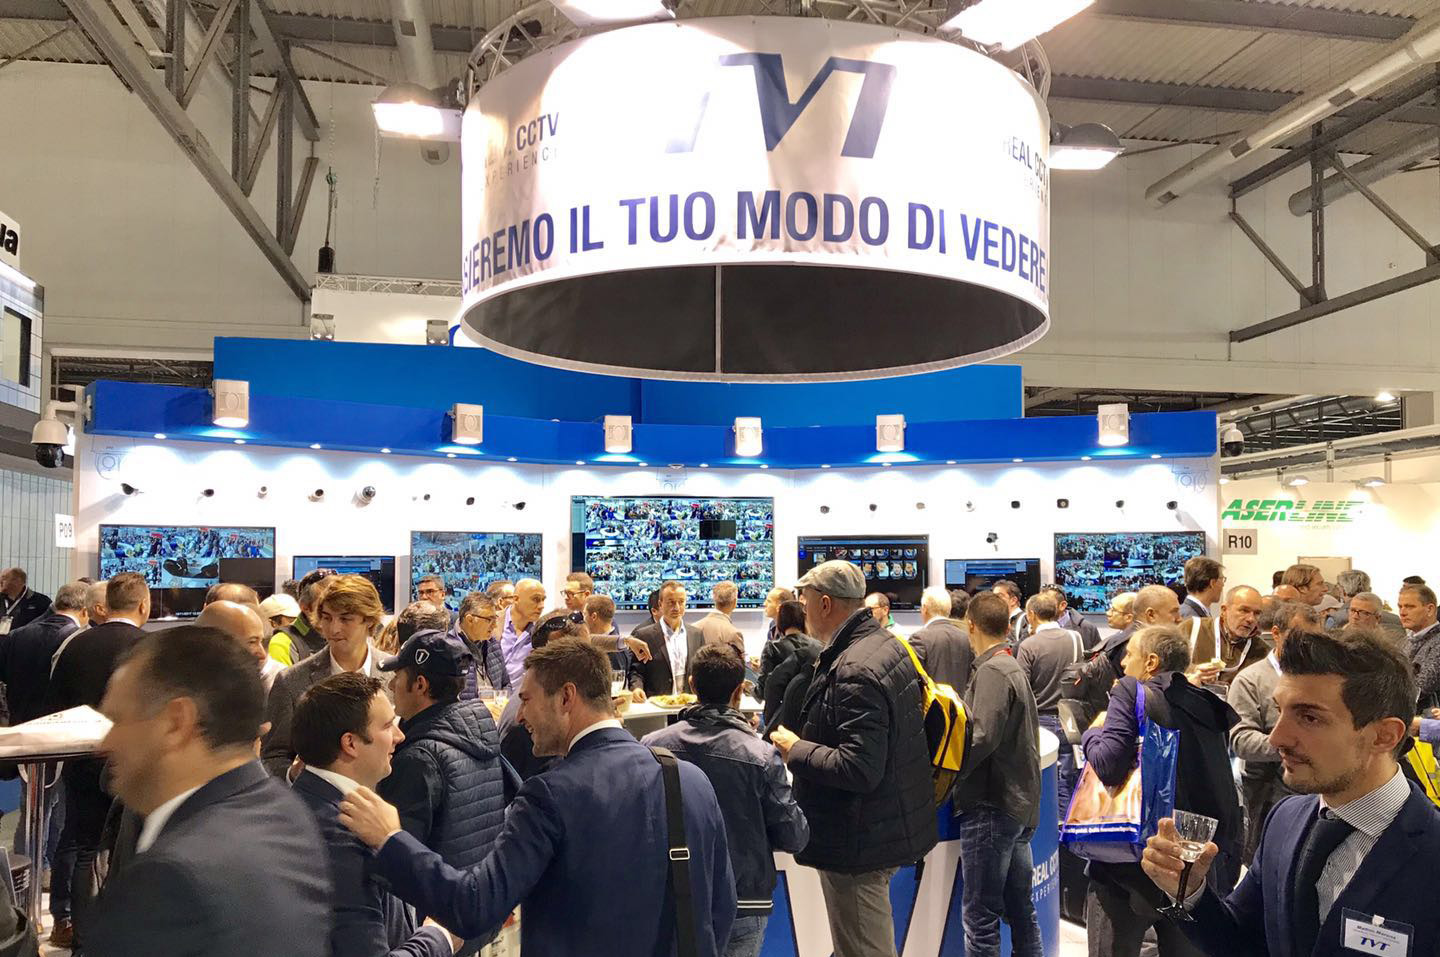 TVT Showcased the Latest Technologies, Products and Solutions in SICUREZZA2017